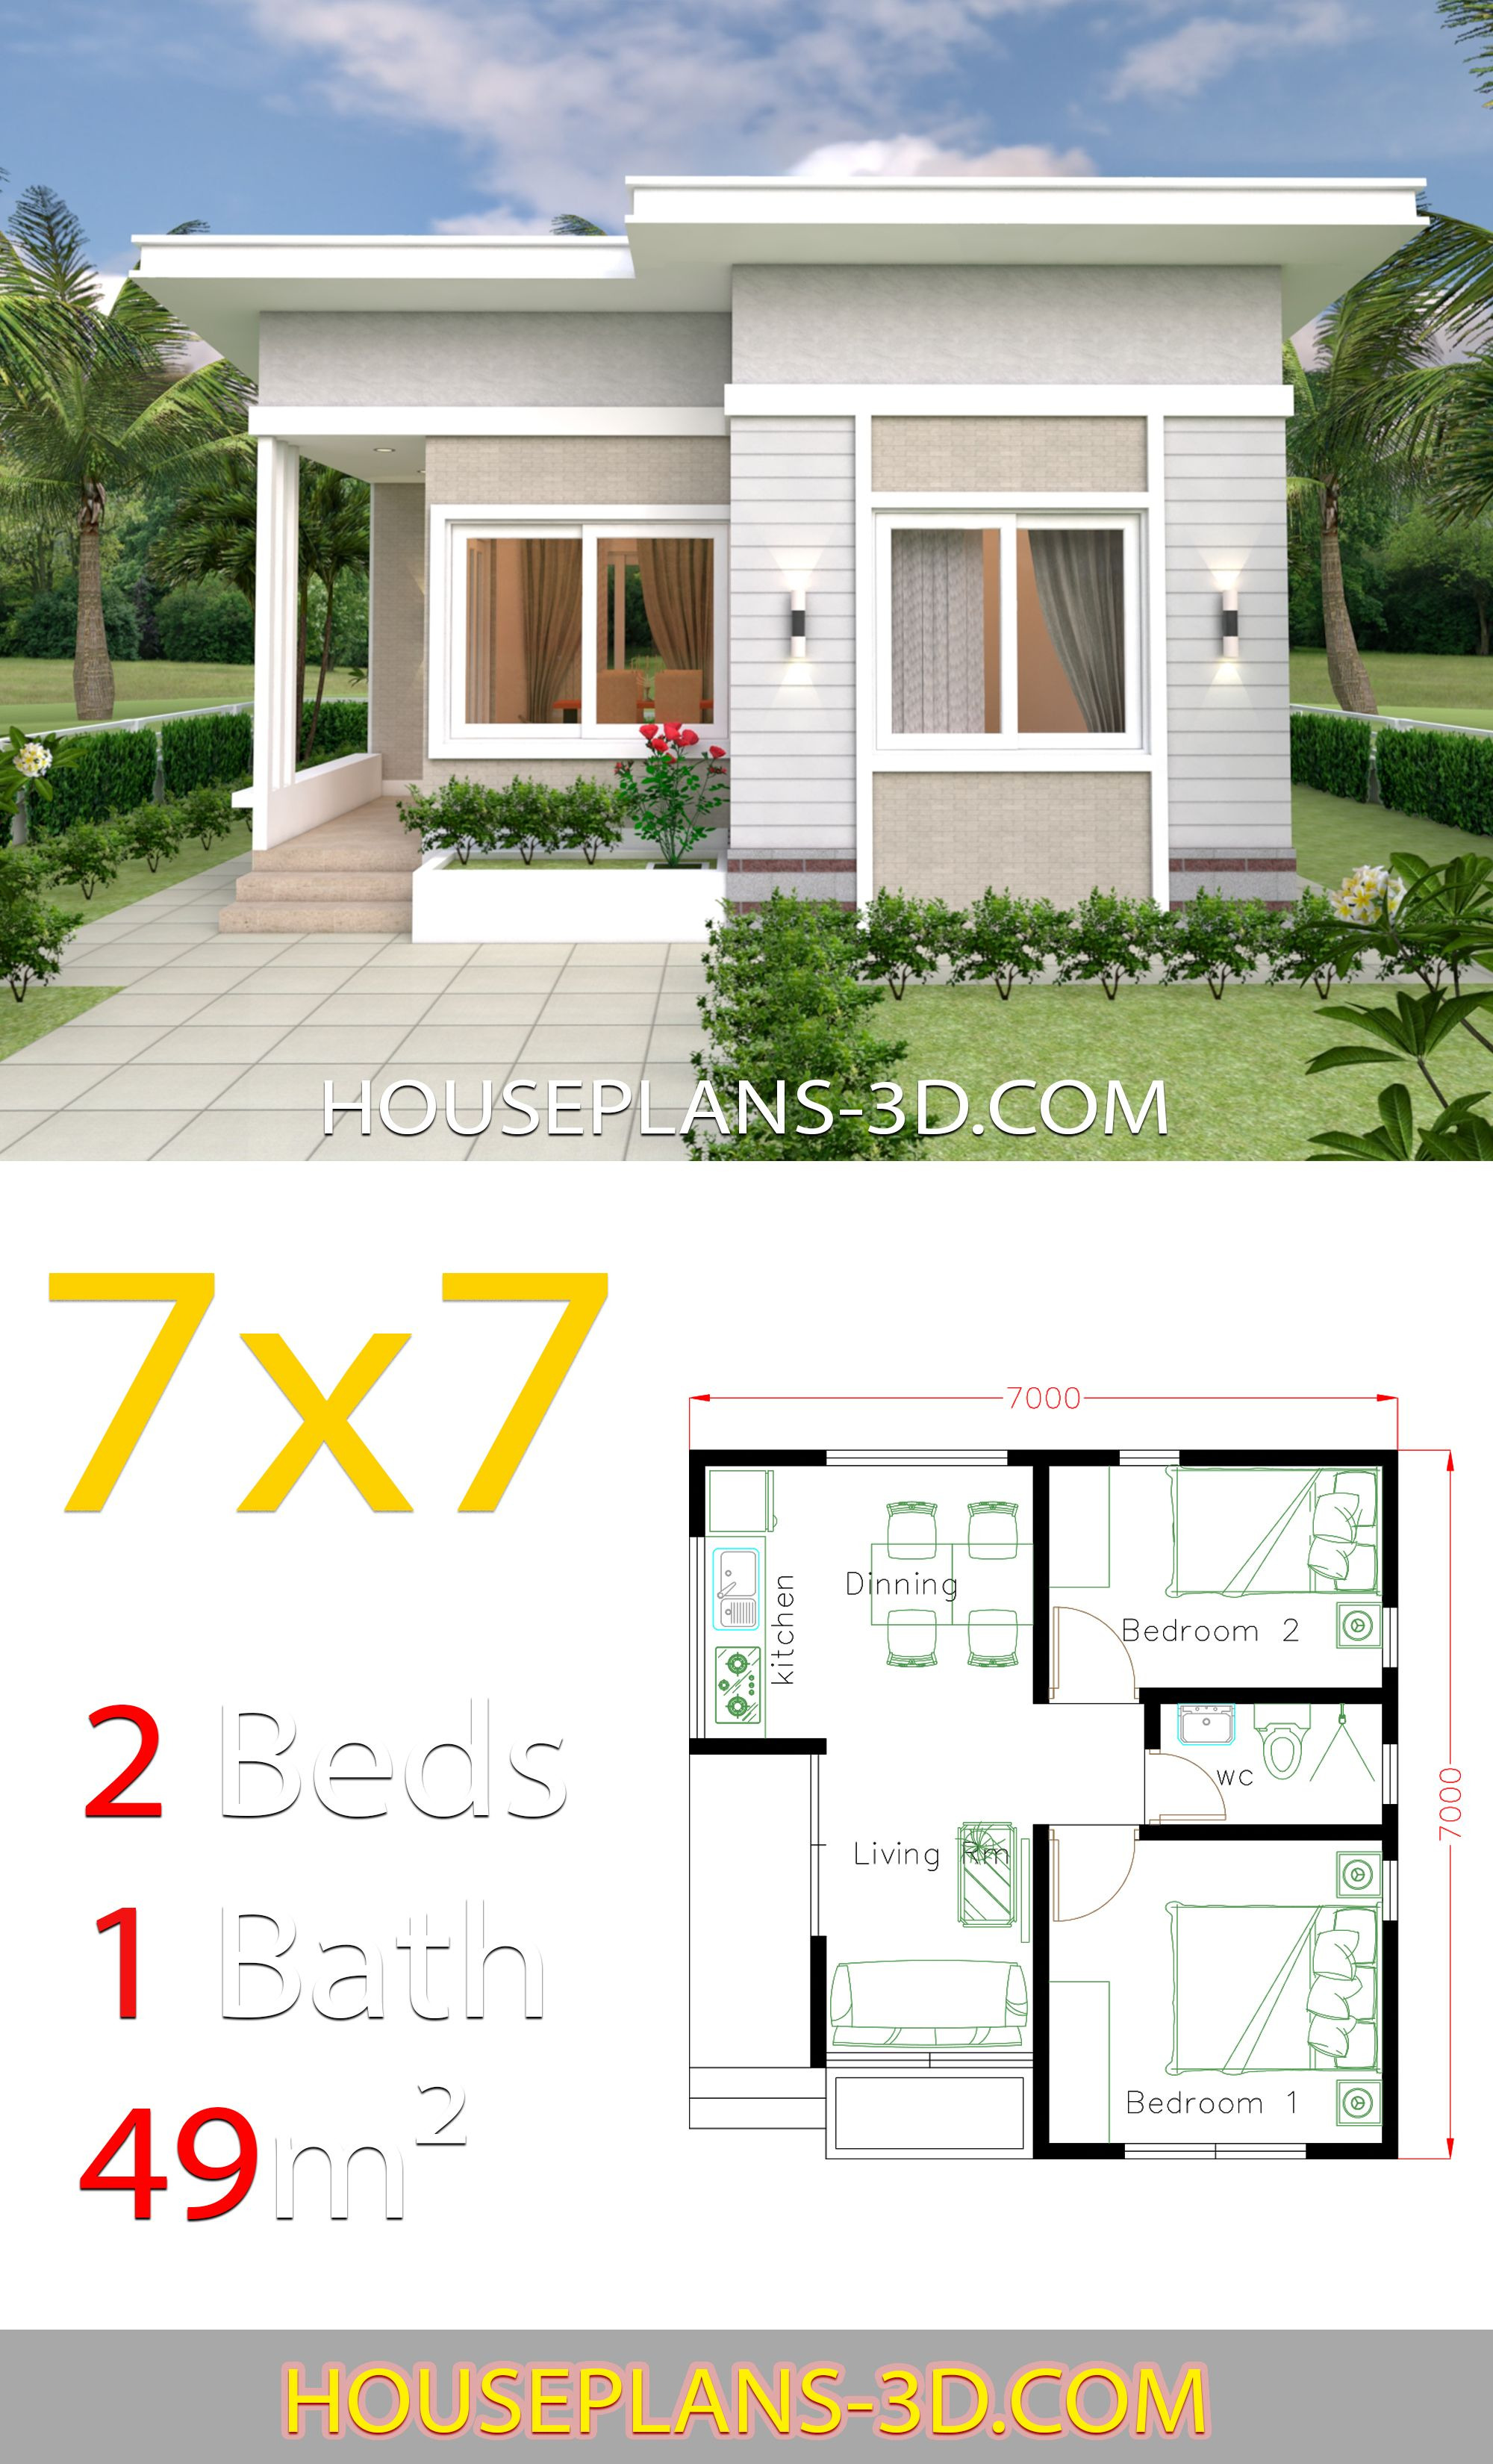 Small 2 Bedroom House Plans Awesome Small House Design 7x7 with 2 Bedrooms Dengan Gambar